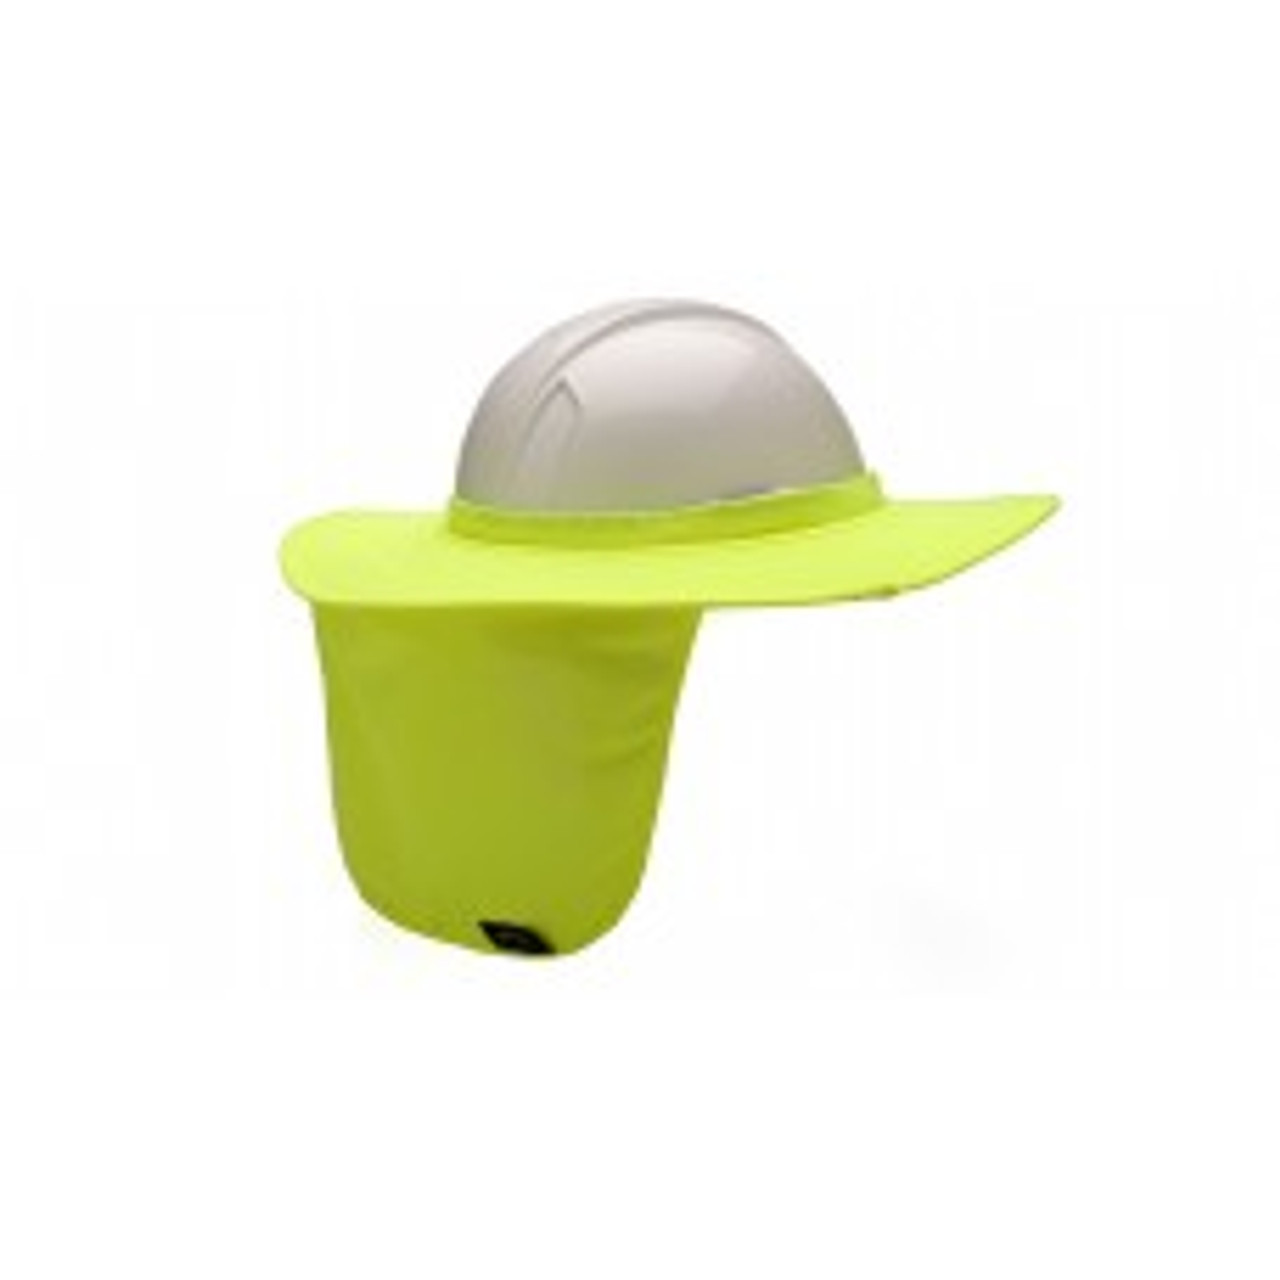 Pyramex HPSHADE30 Lime Hard Hat Brim with Neck Shade, Qty.1